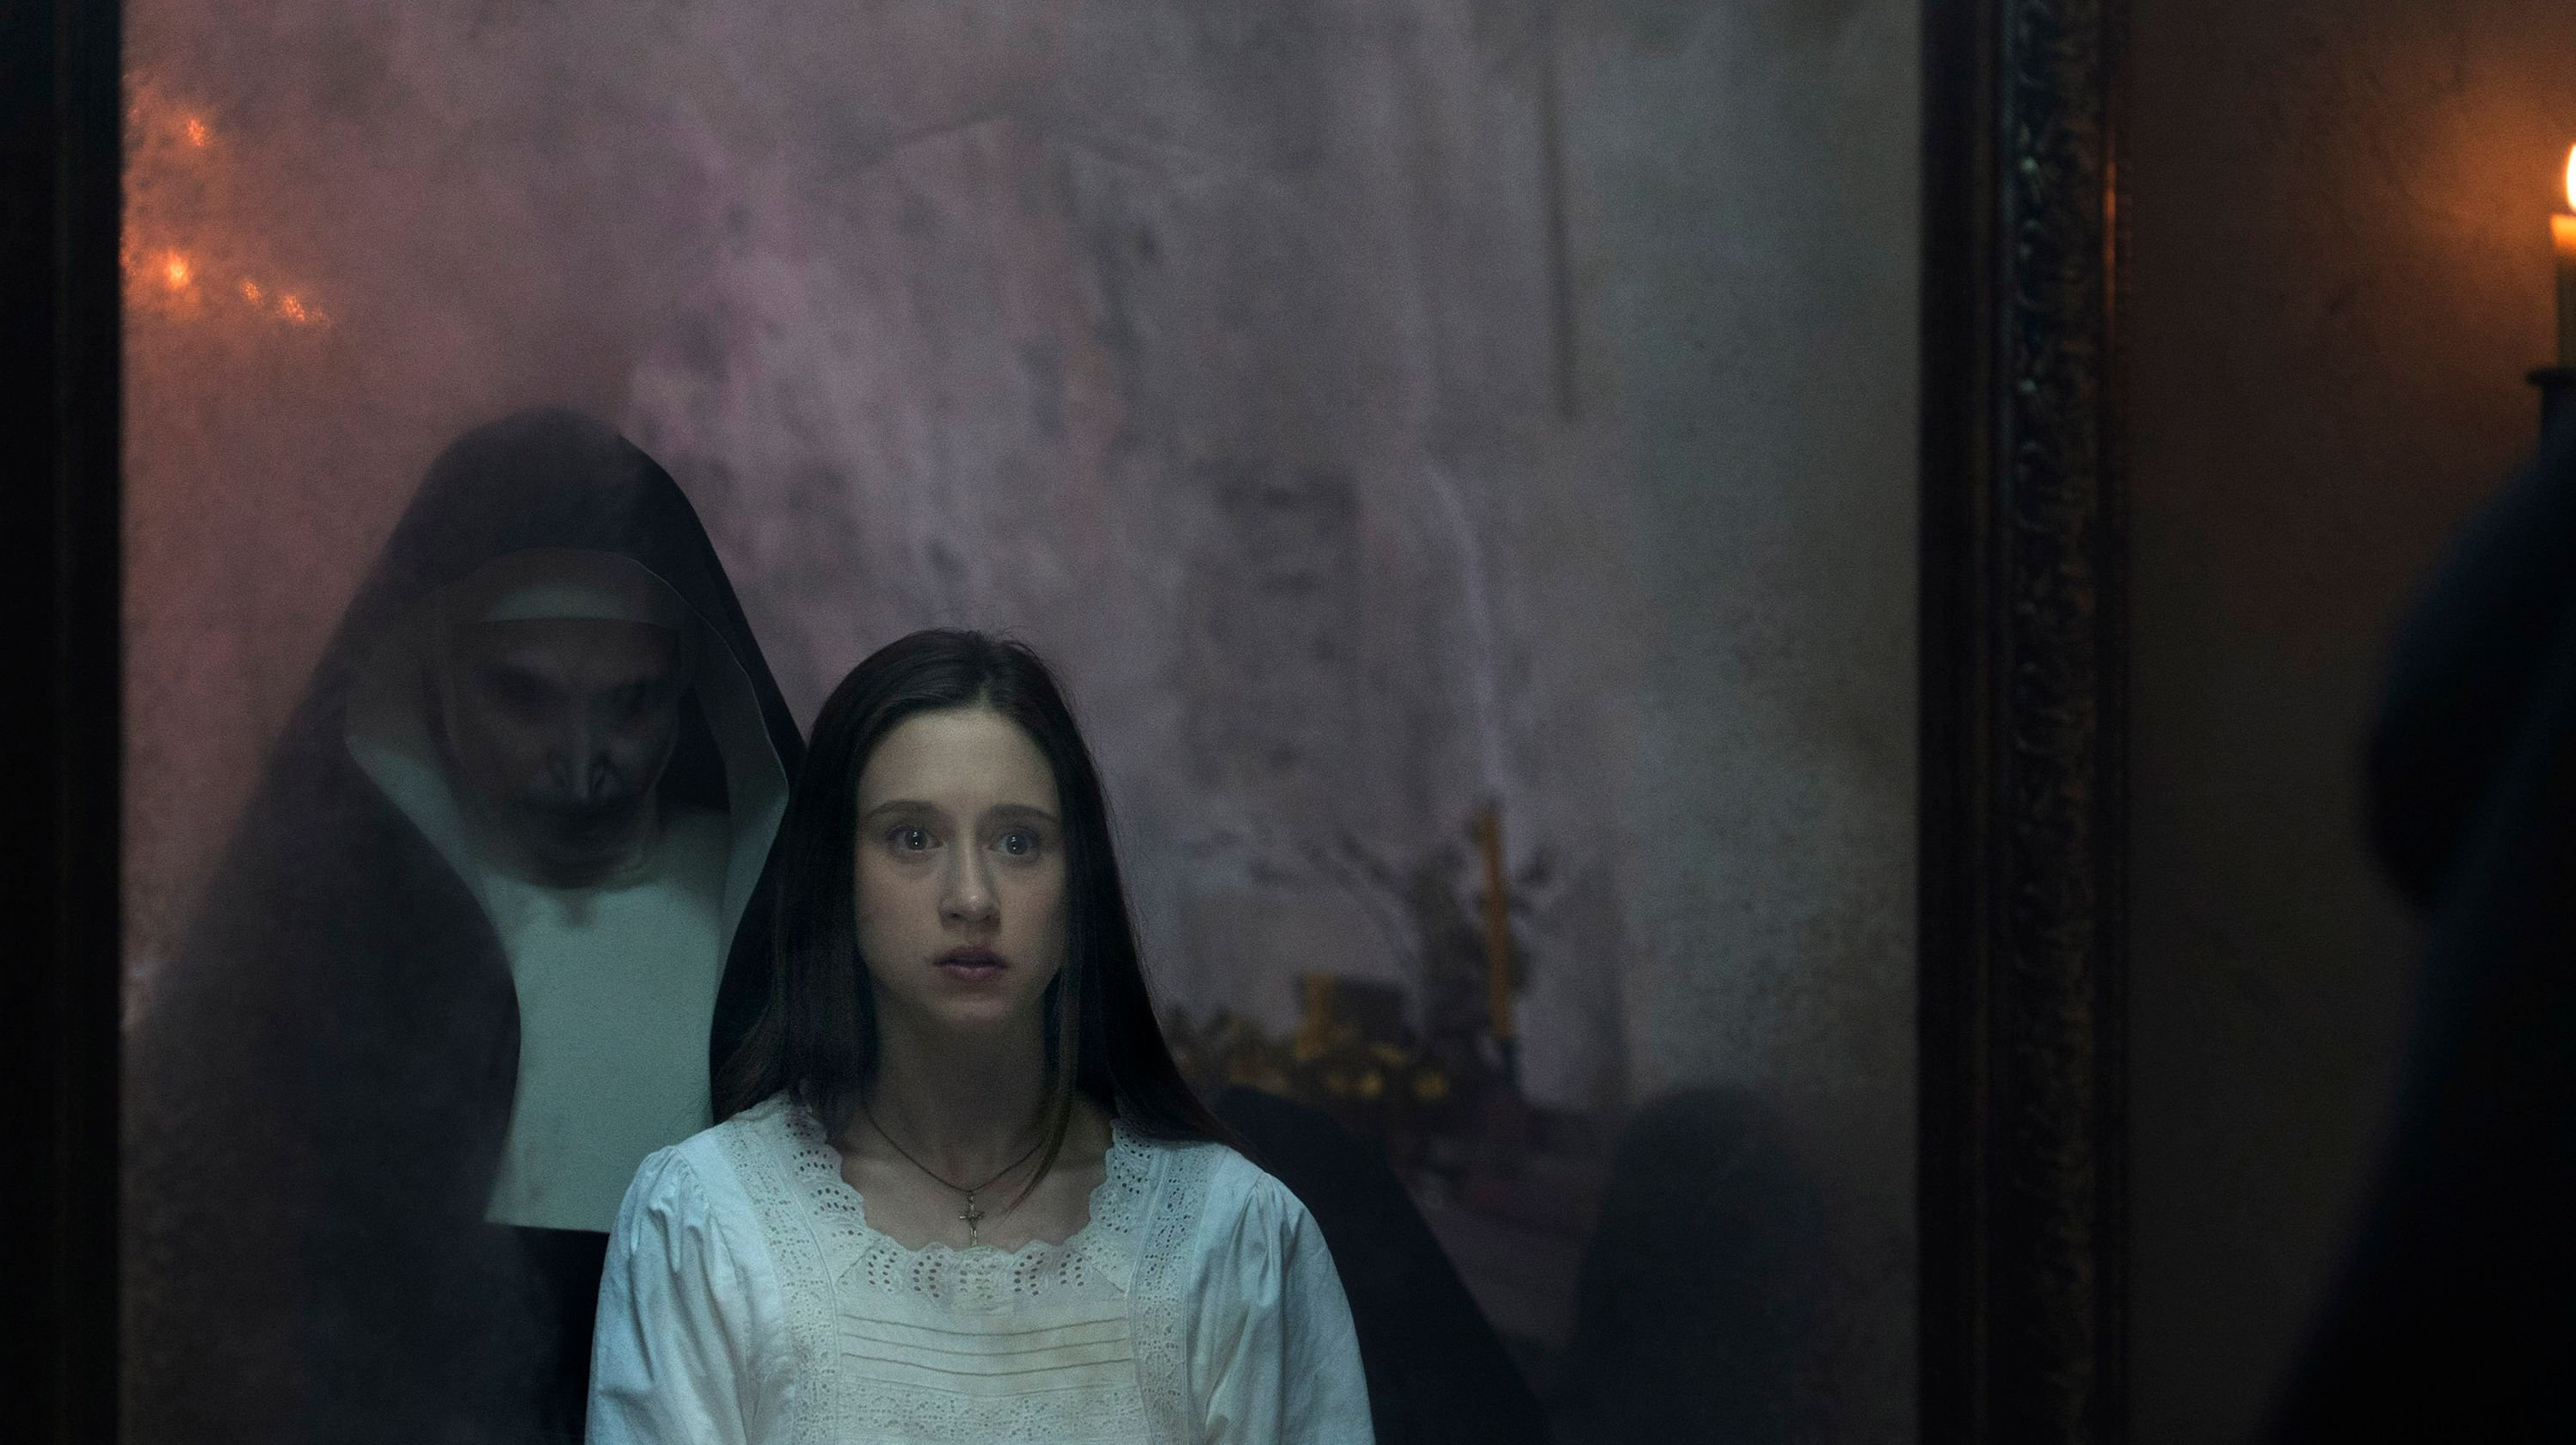 'The Nun' did divinely well at the box office: Biggest debut in the 'Conjuring' franchise